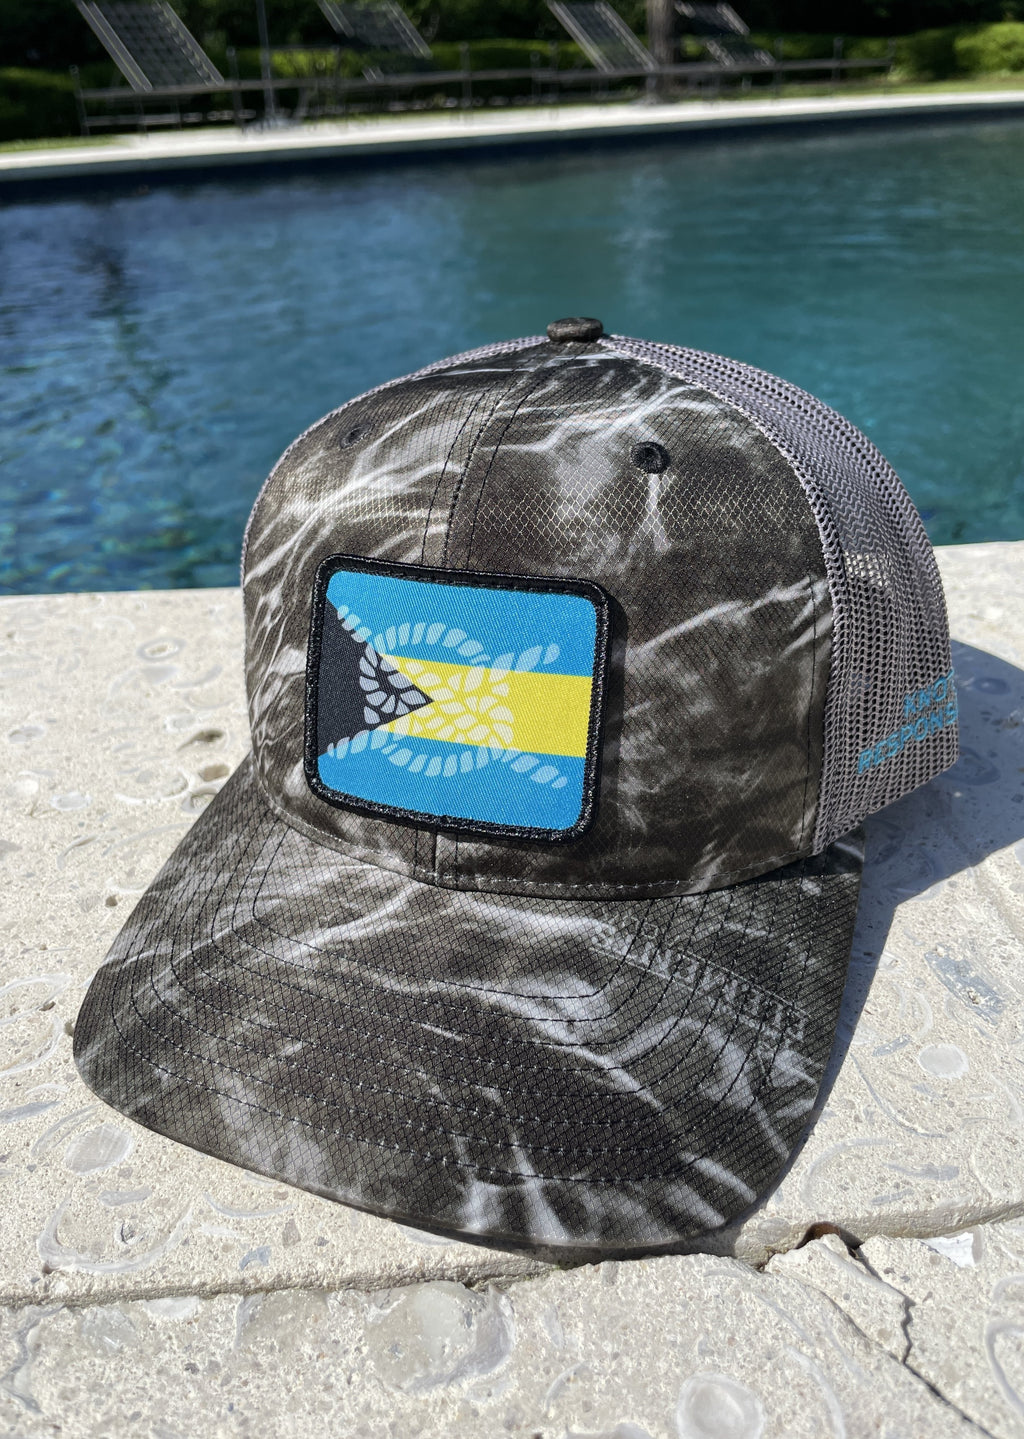 Bahama Original Trucker Hat- Blacktip Camo